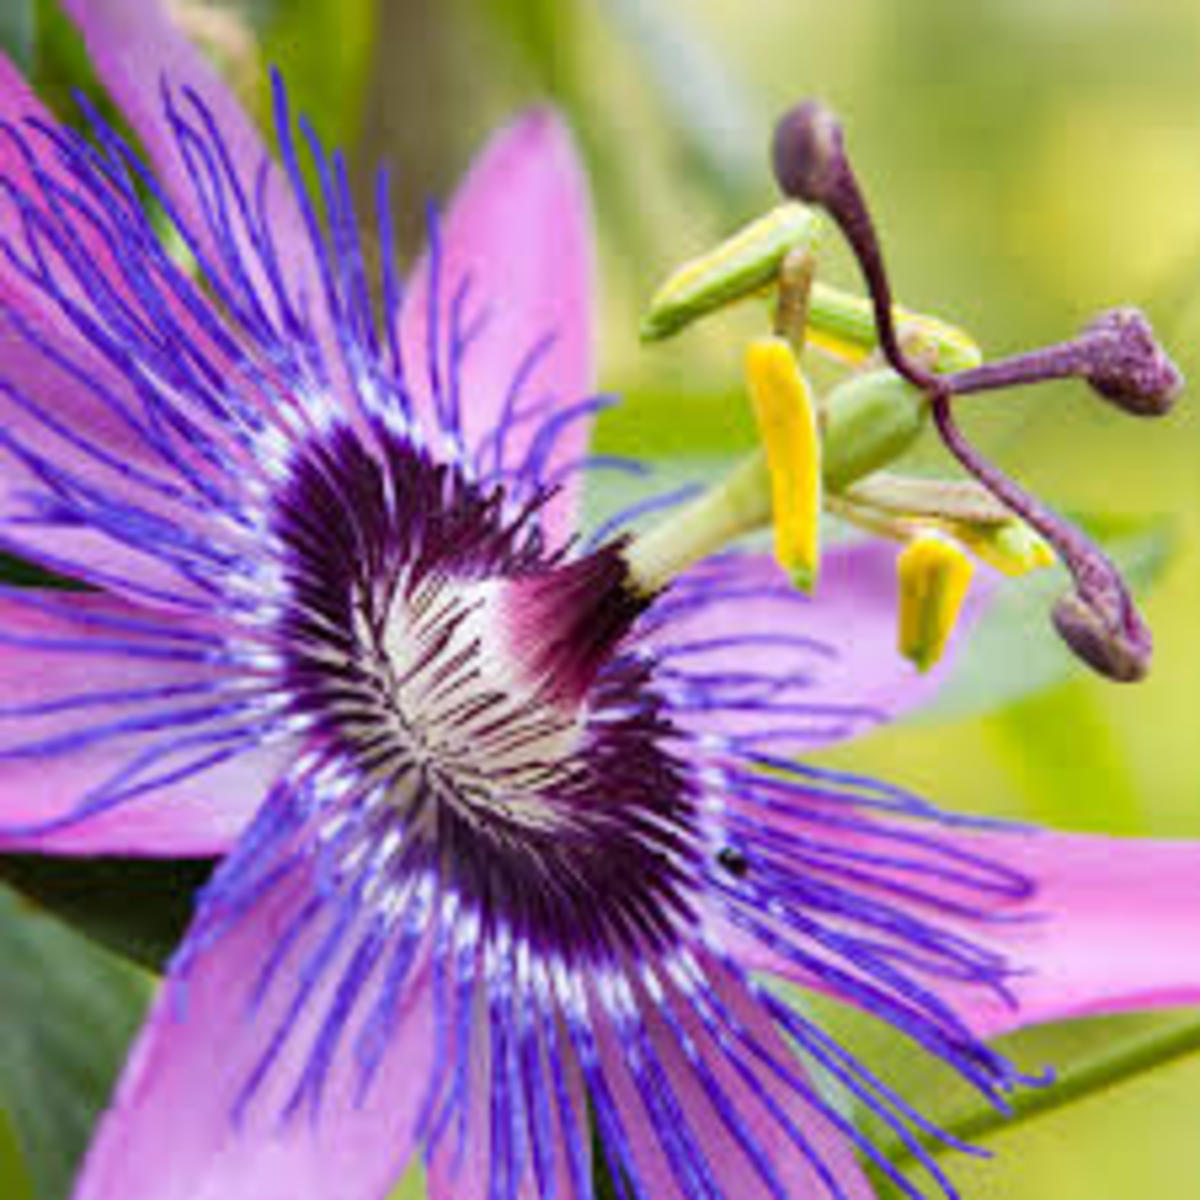 Passionflower Works As A Very Mild Sedative By Increasing GABA In The Brain